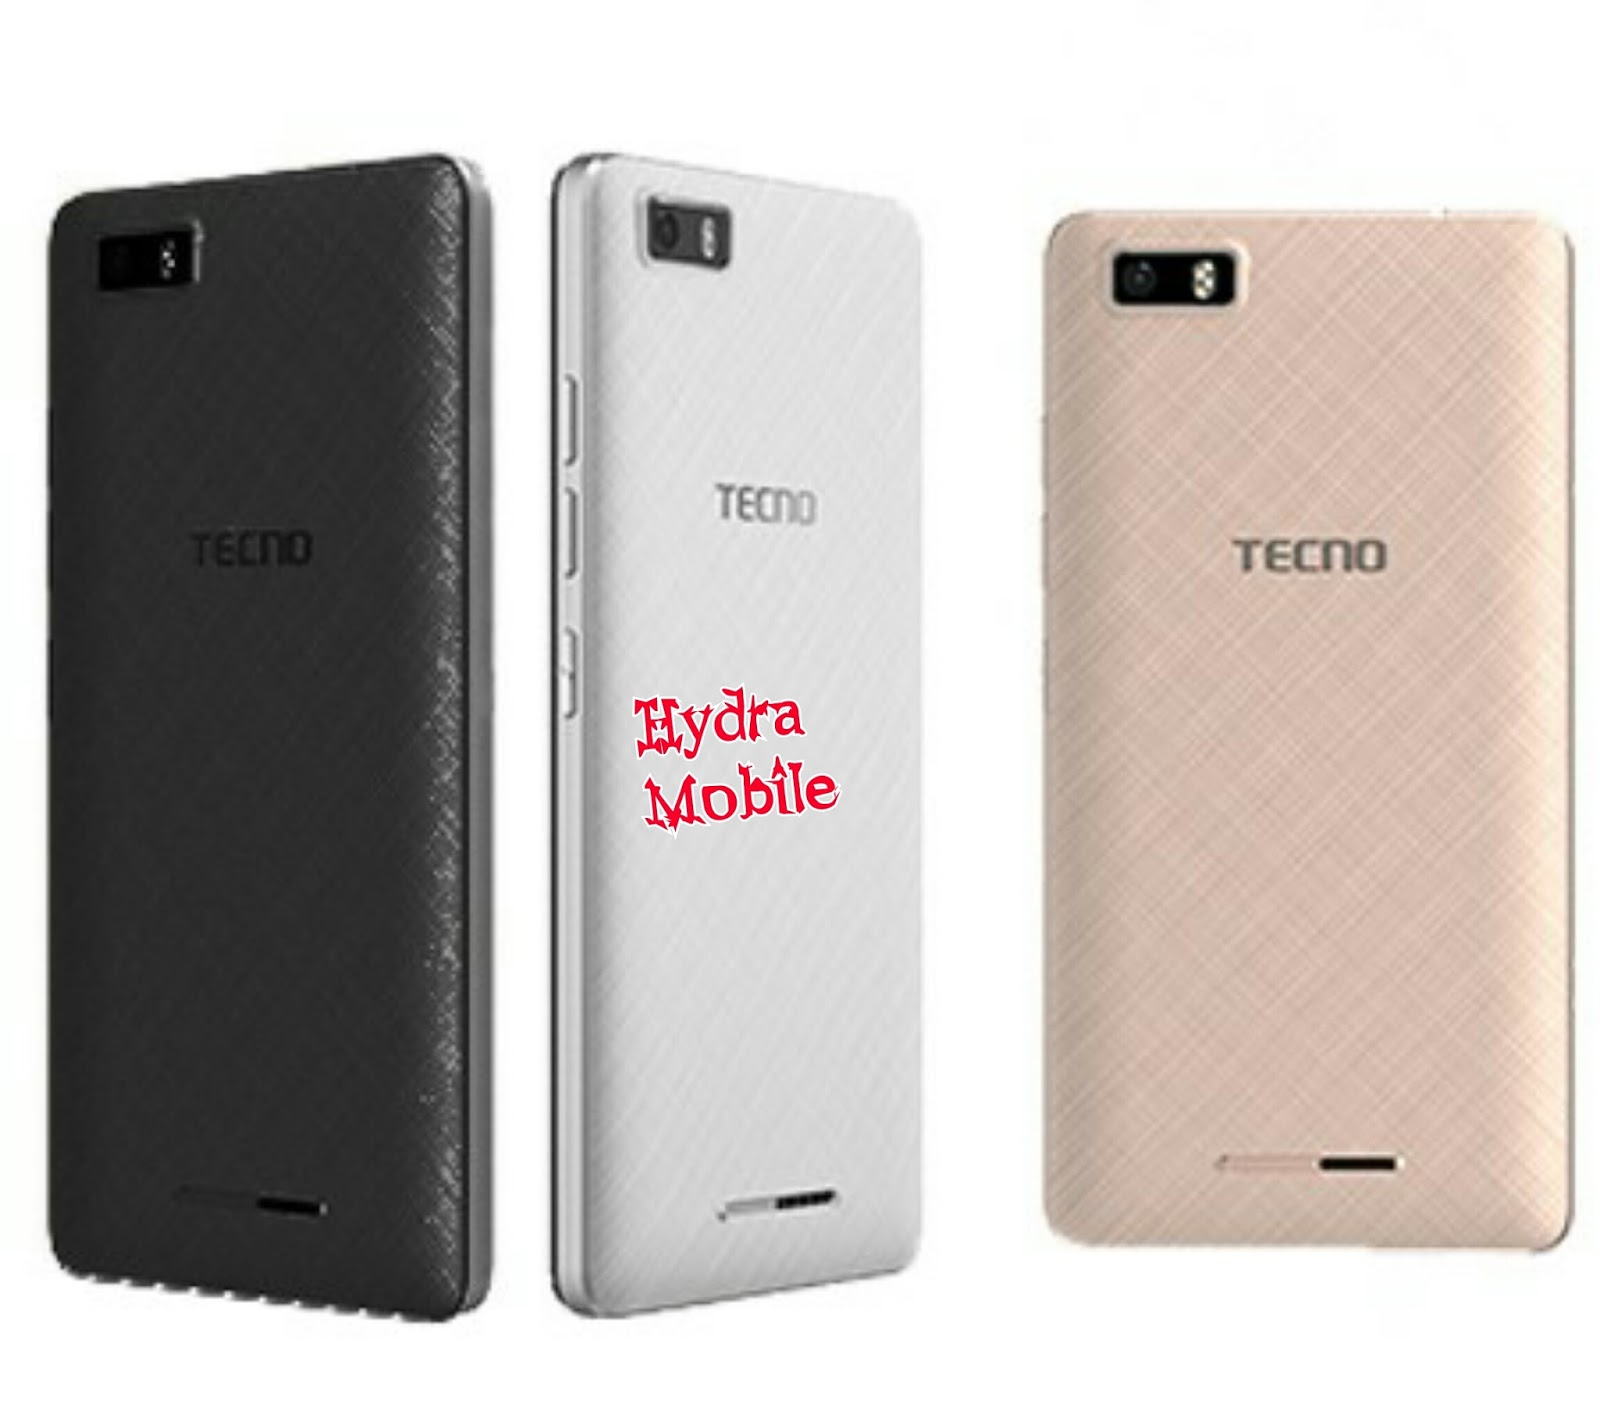 Tecno WX3, WX3 LTE And WX3 PRO Specifications And Price